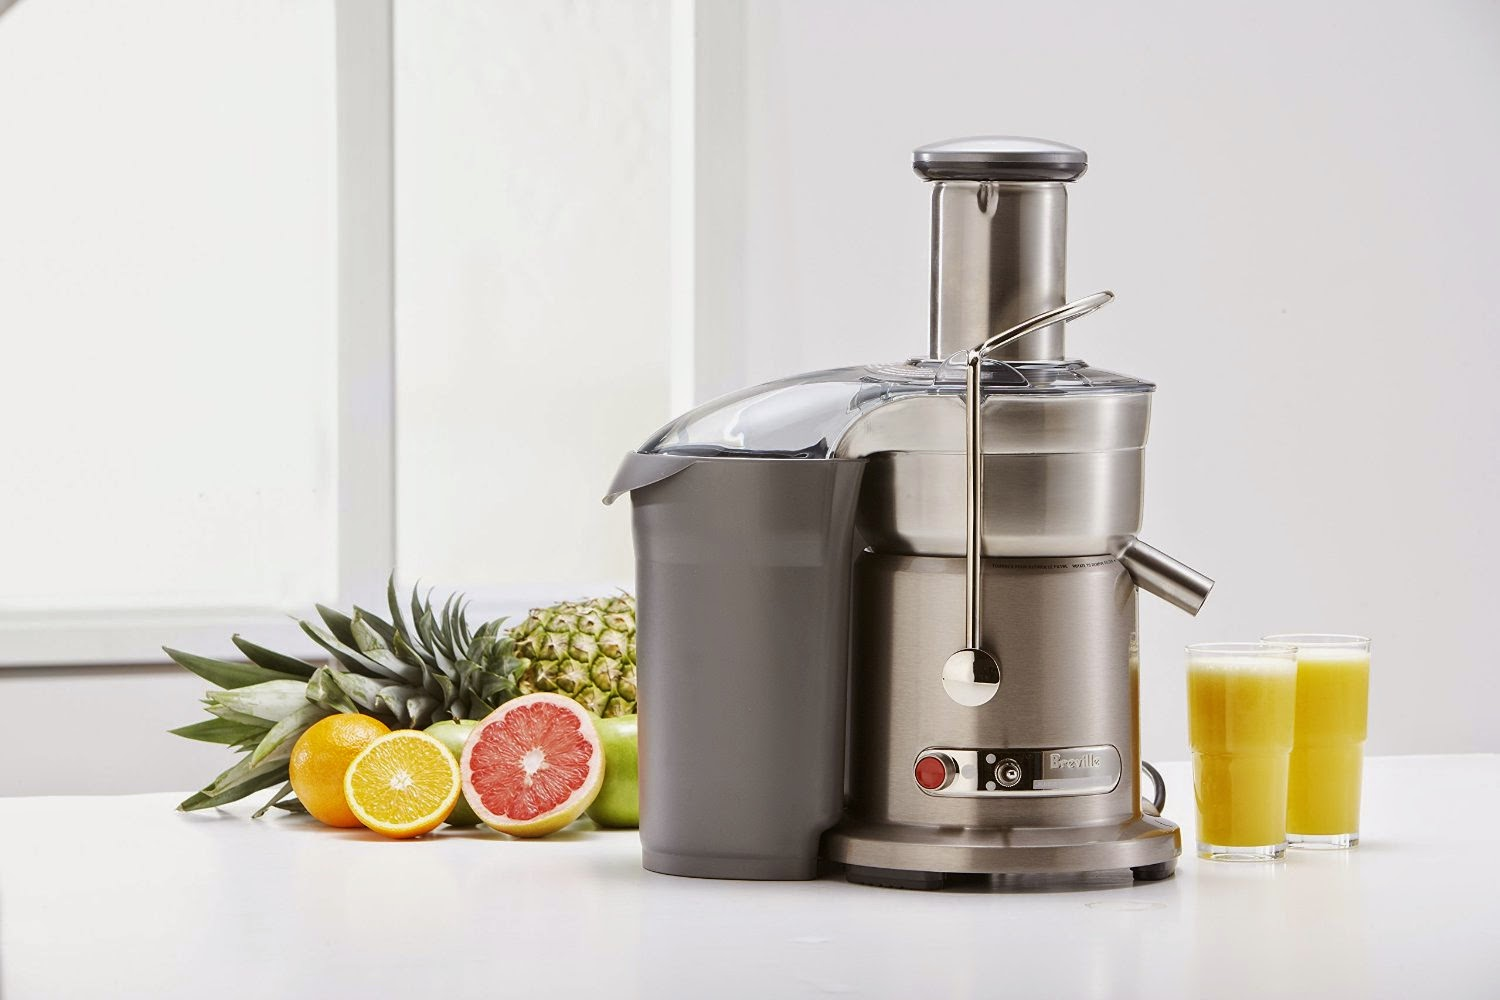 Breville 800JEXL Juice Fountain Elite 1000-Watt Juice Extractor, picture, image, review features and specifications